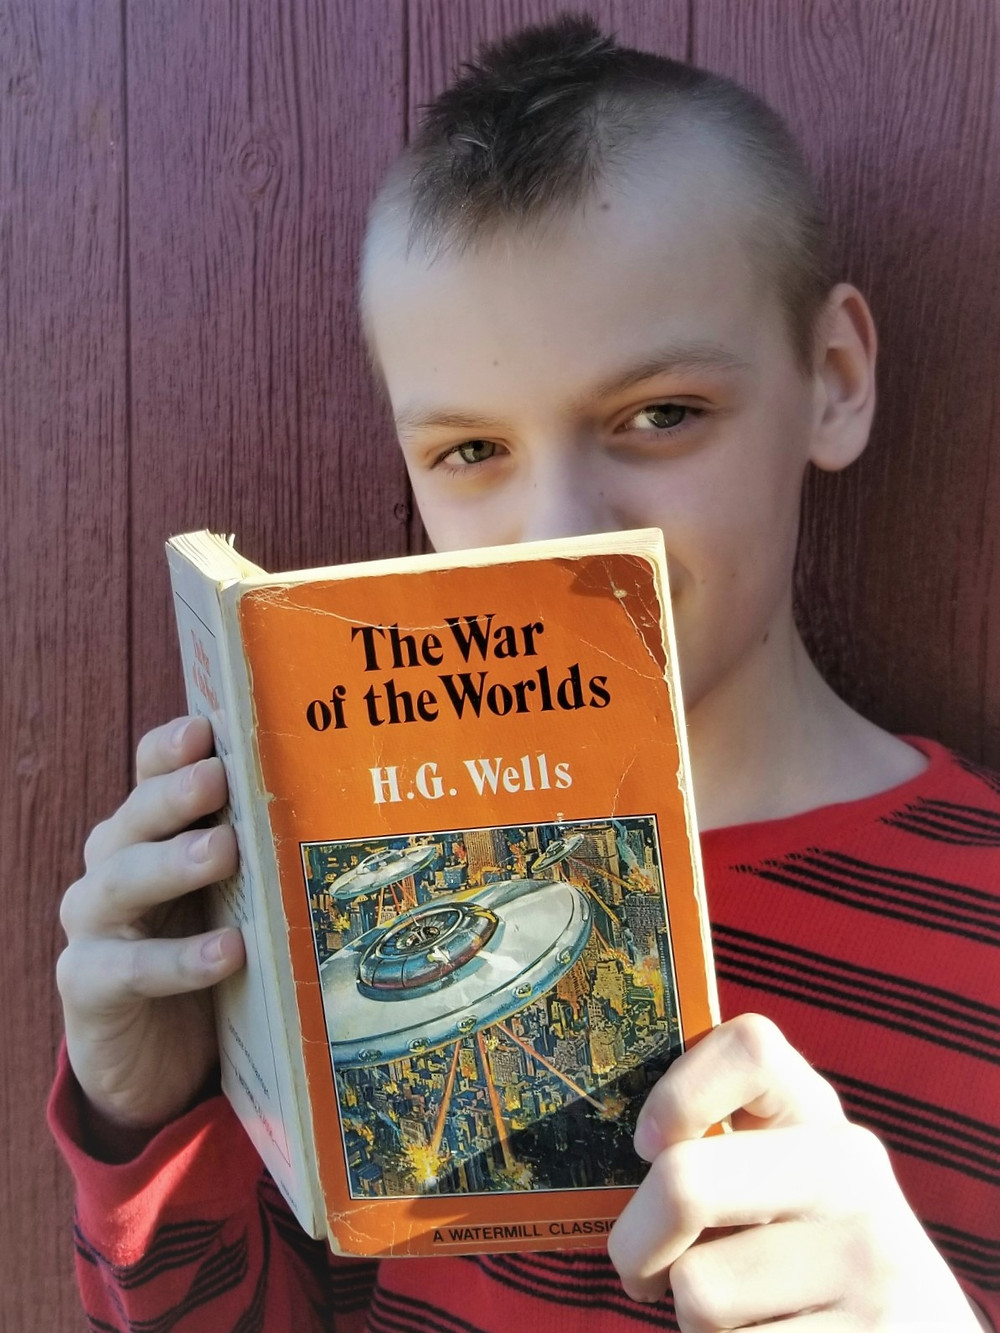 war of the worlds cover art, war of the worlds book review and summary, middle school reading list